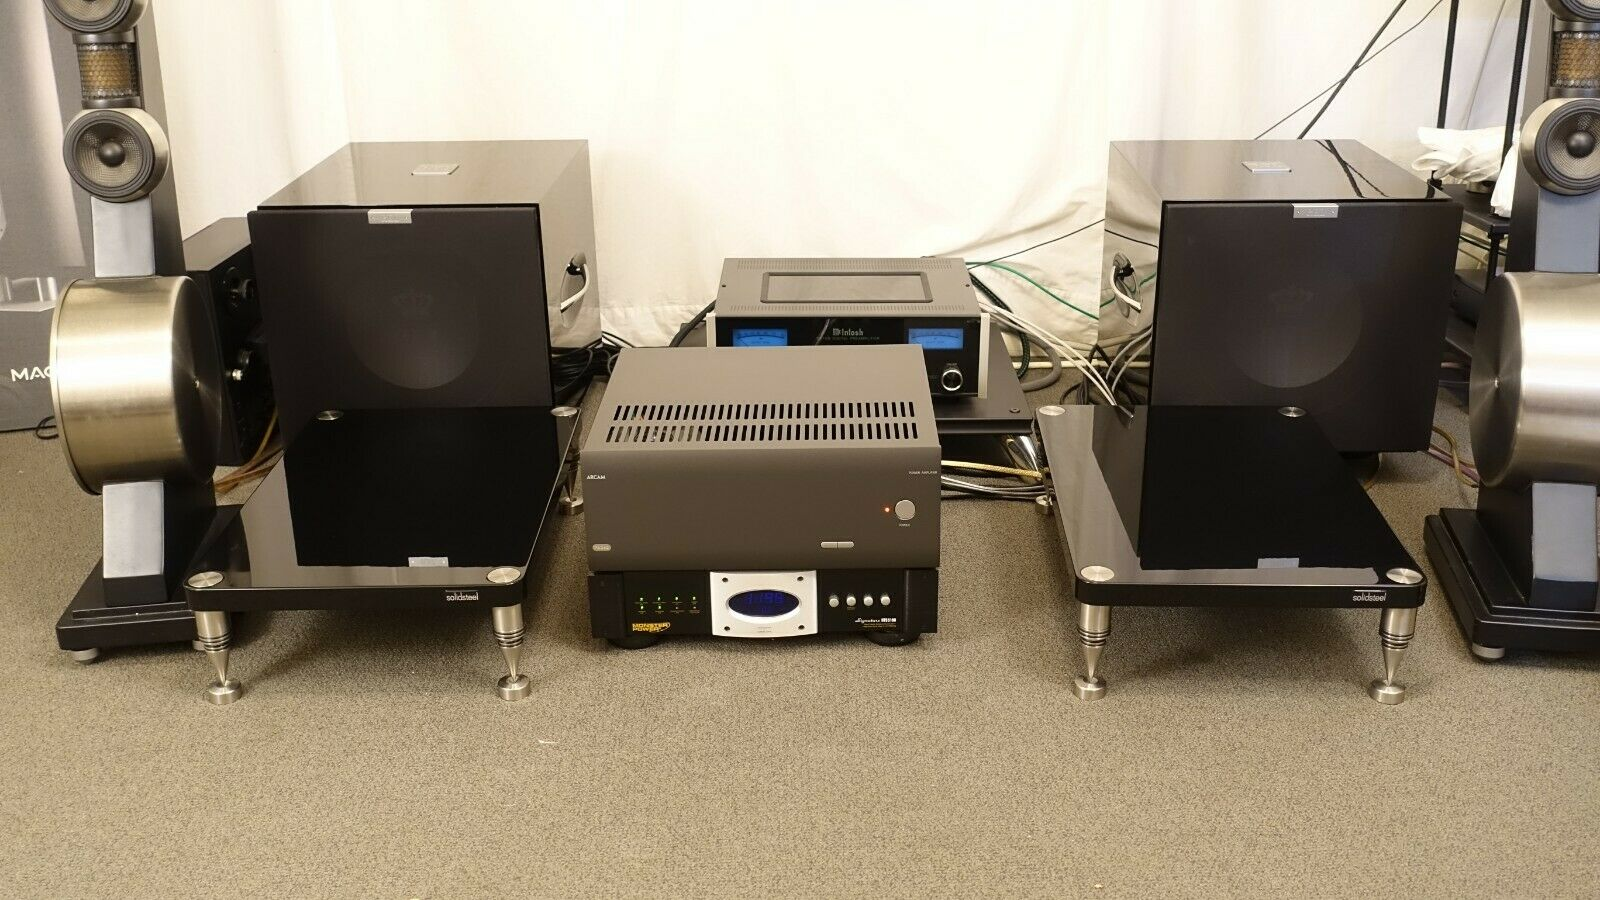 SolidSteel HF-A High-End Amplifier Stands. Buy it now for 1199.99